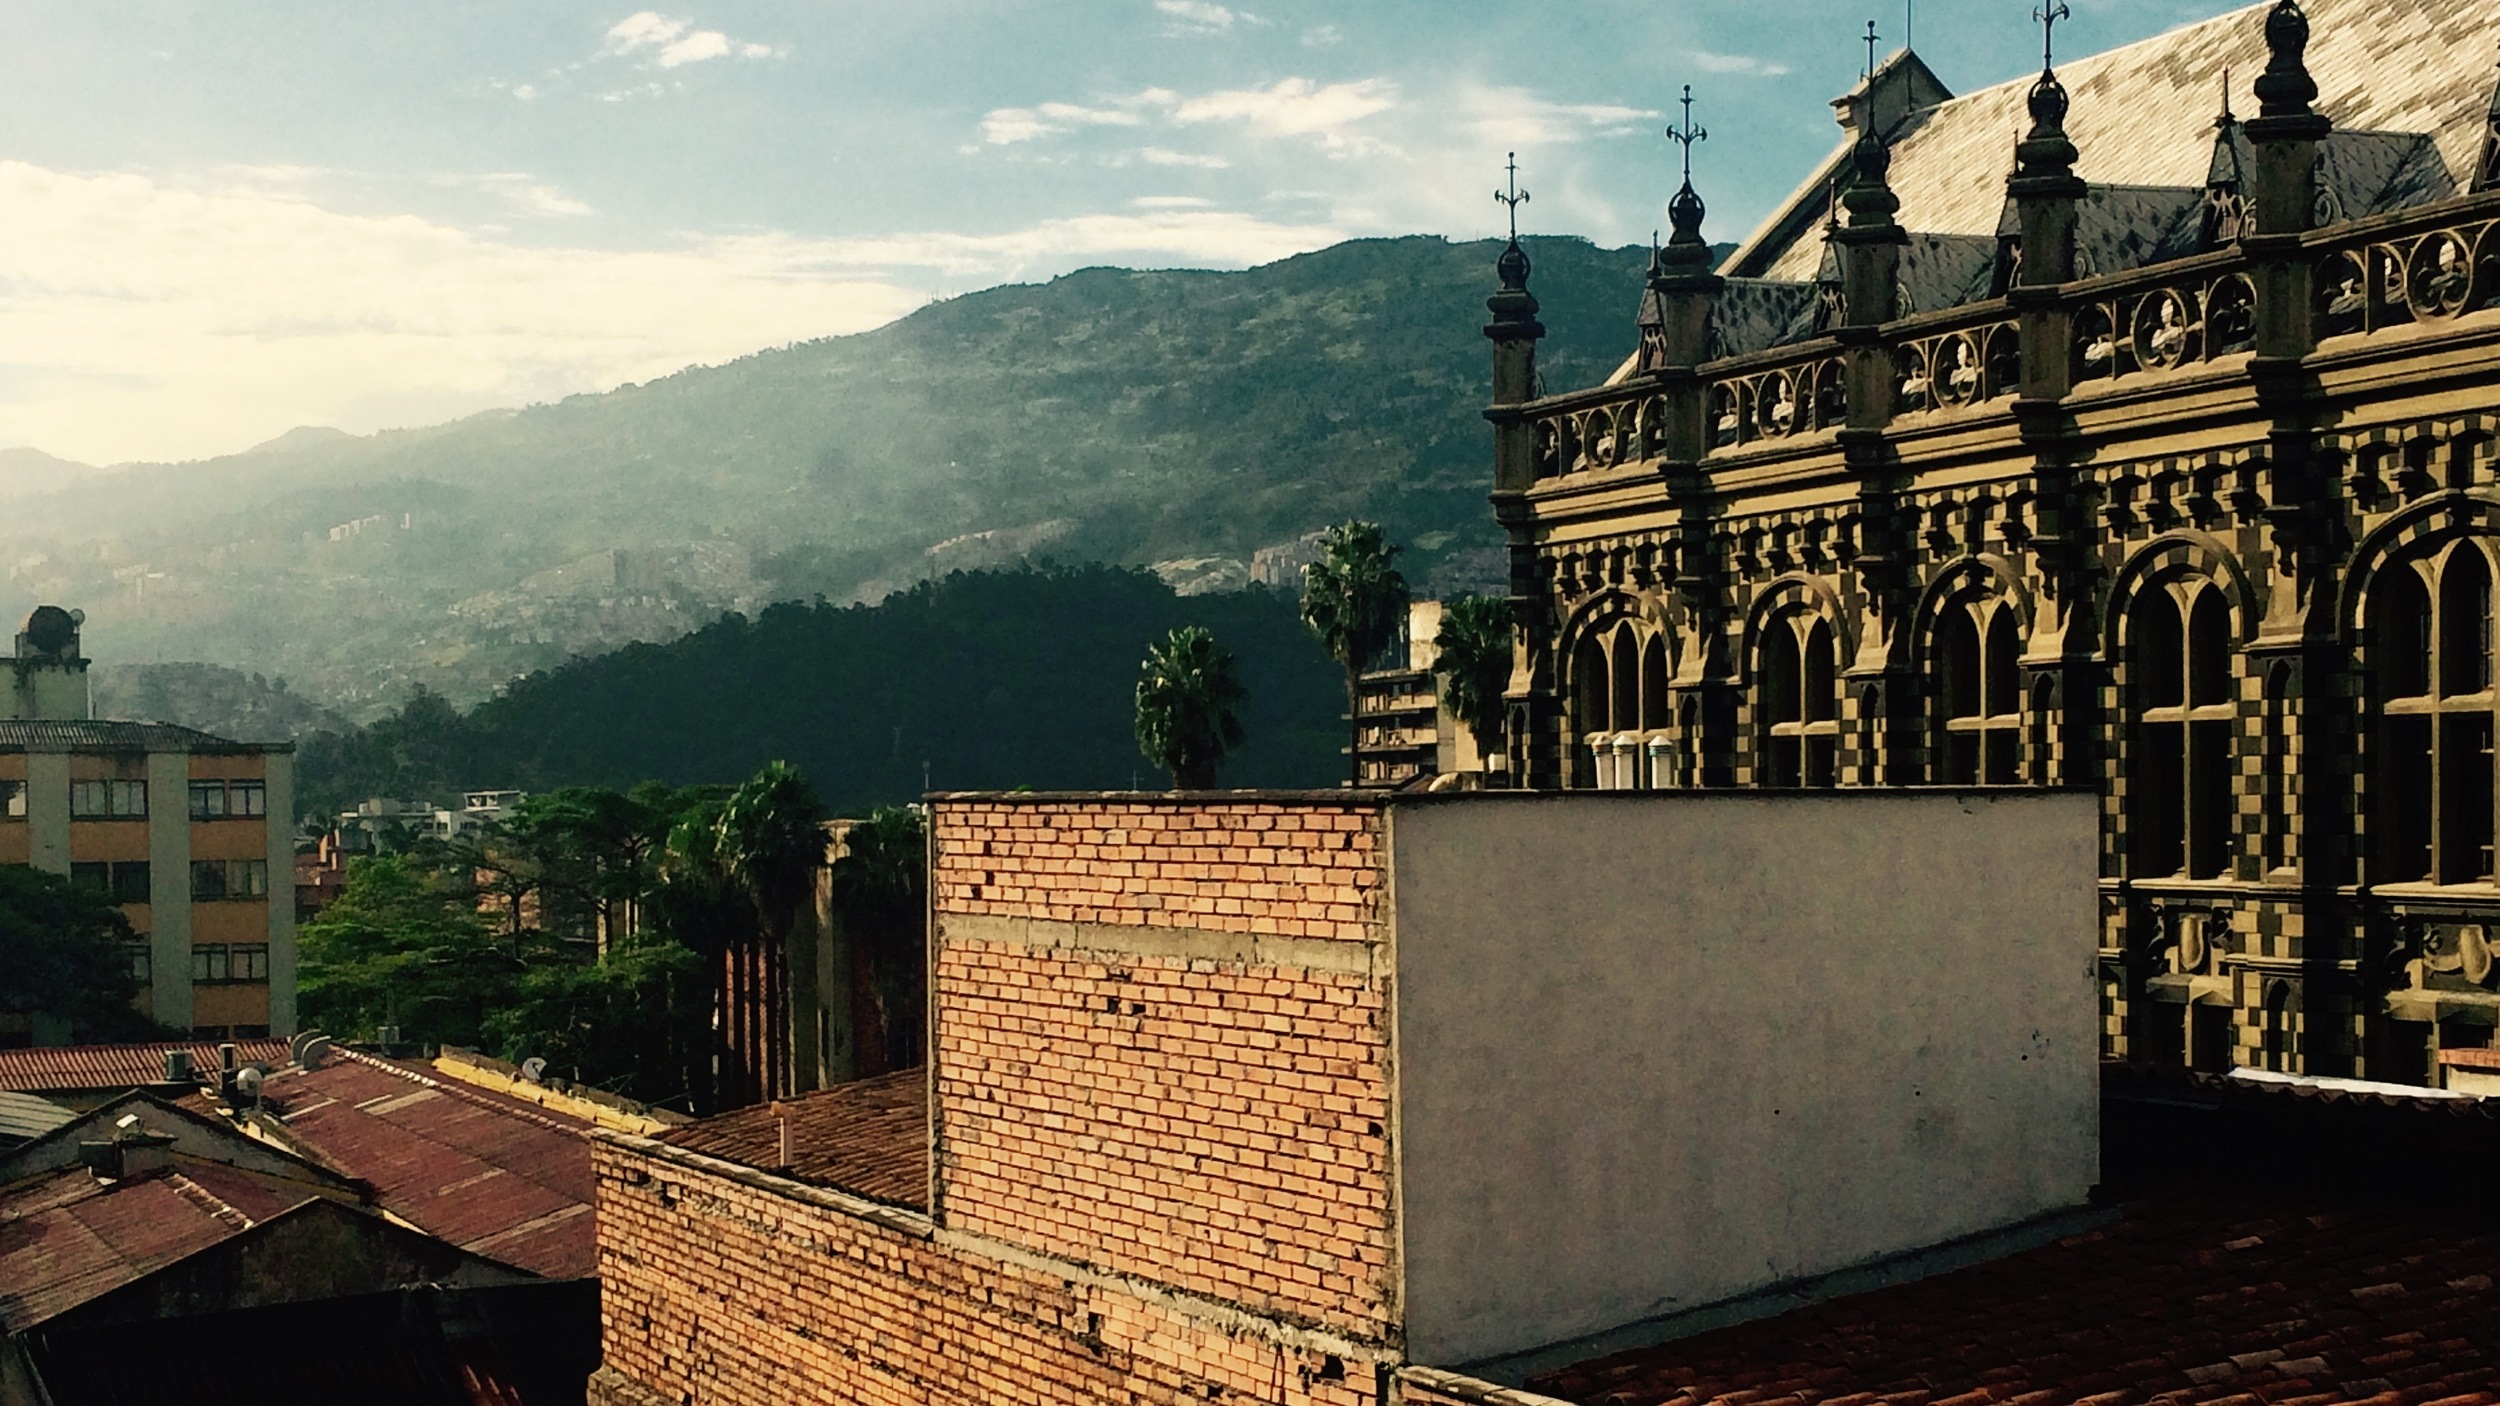 Another gorgeous day in Medellín.